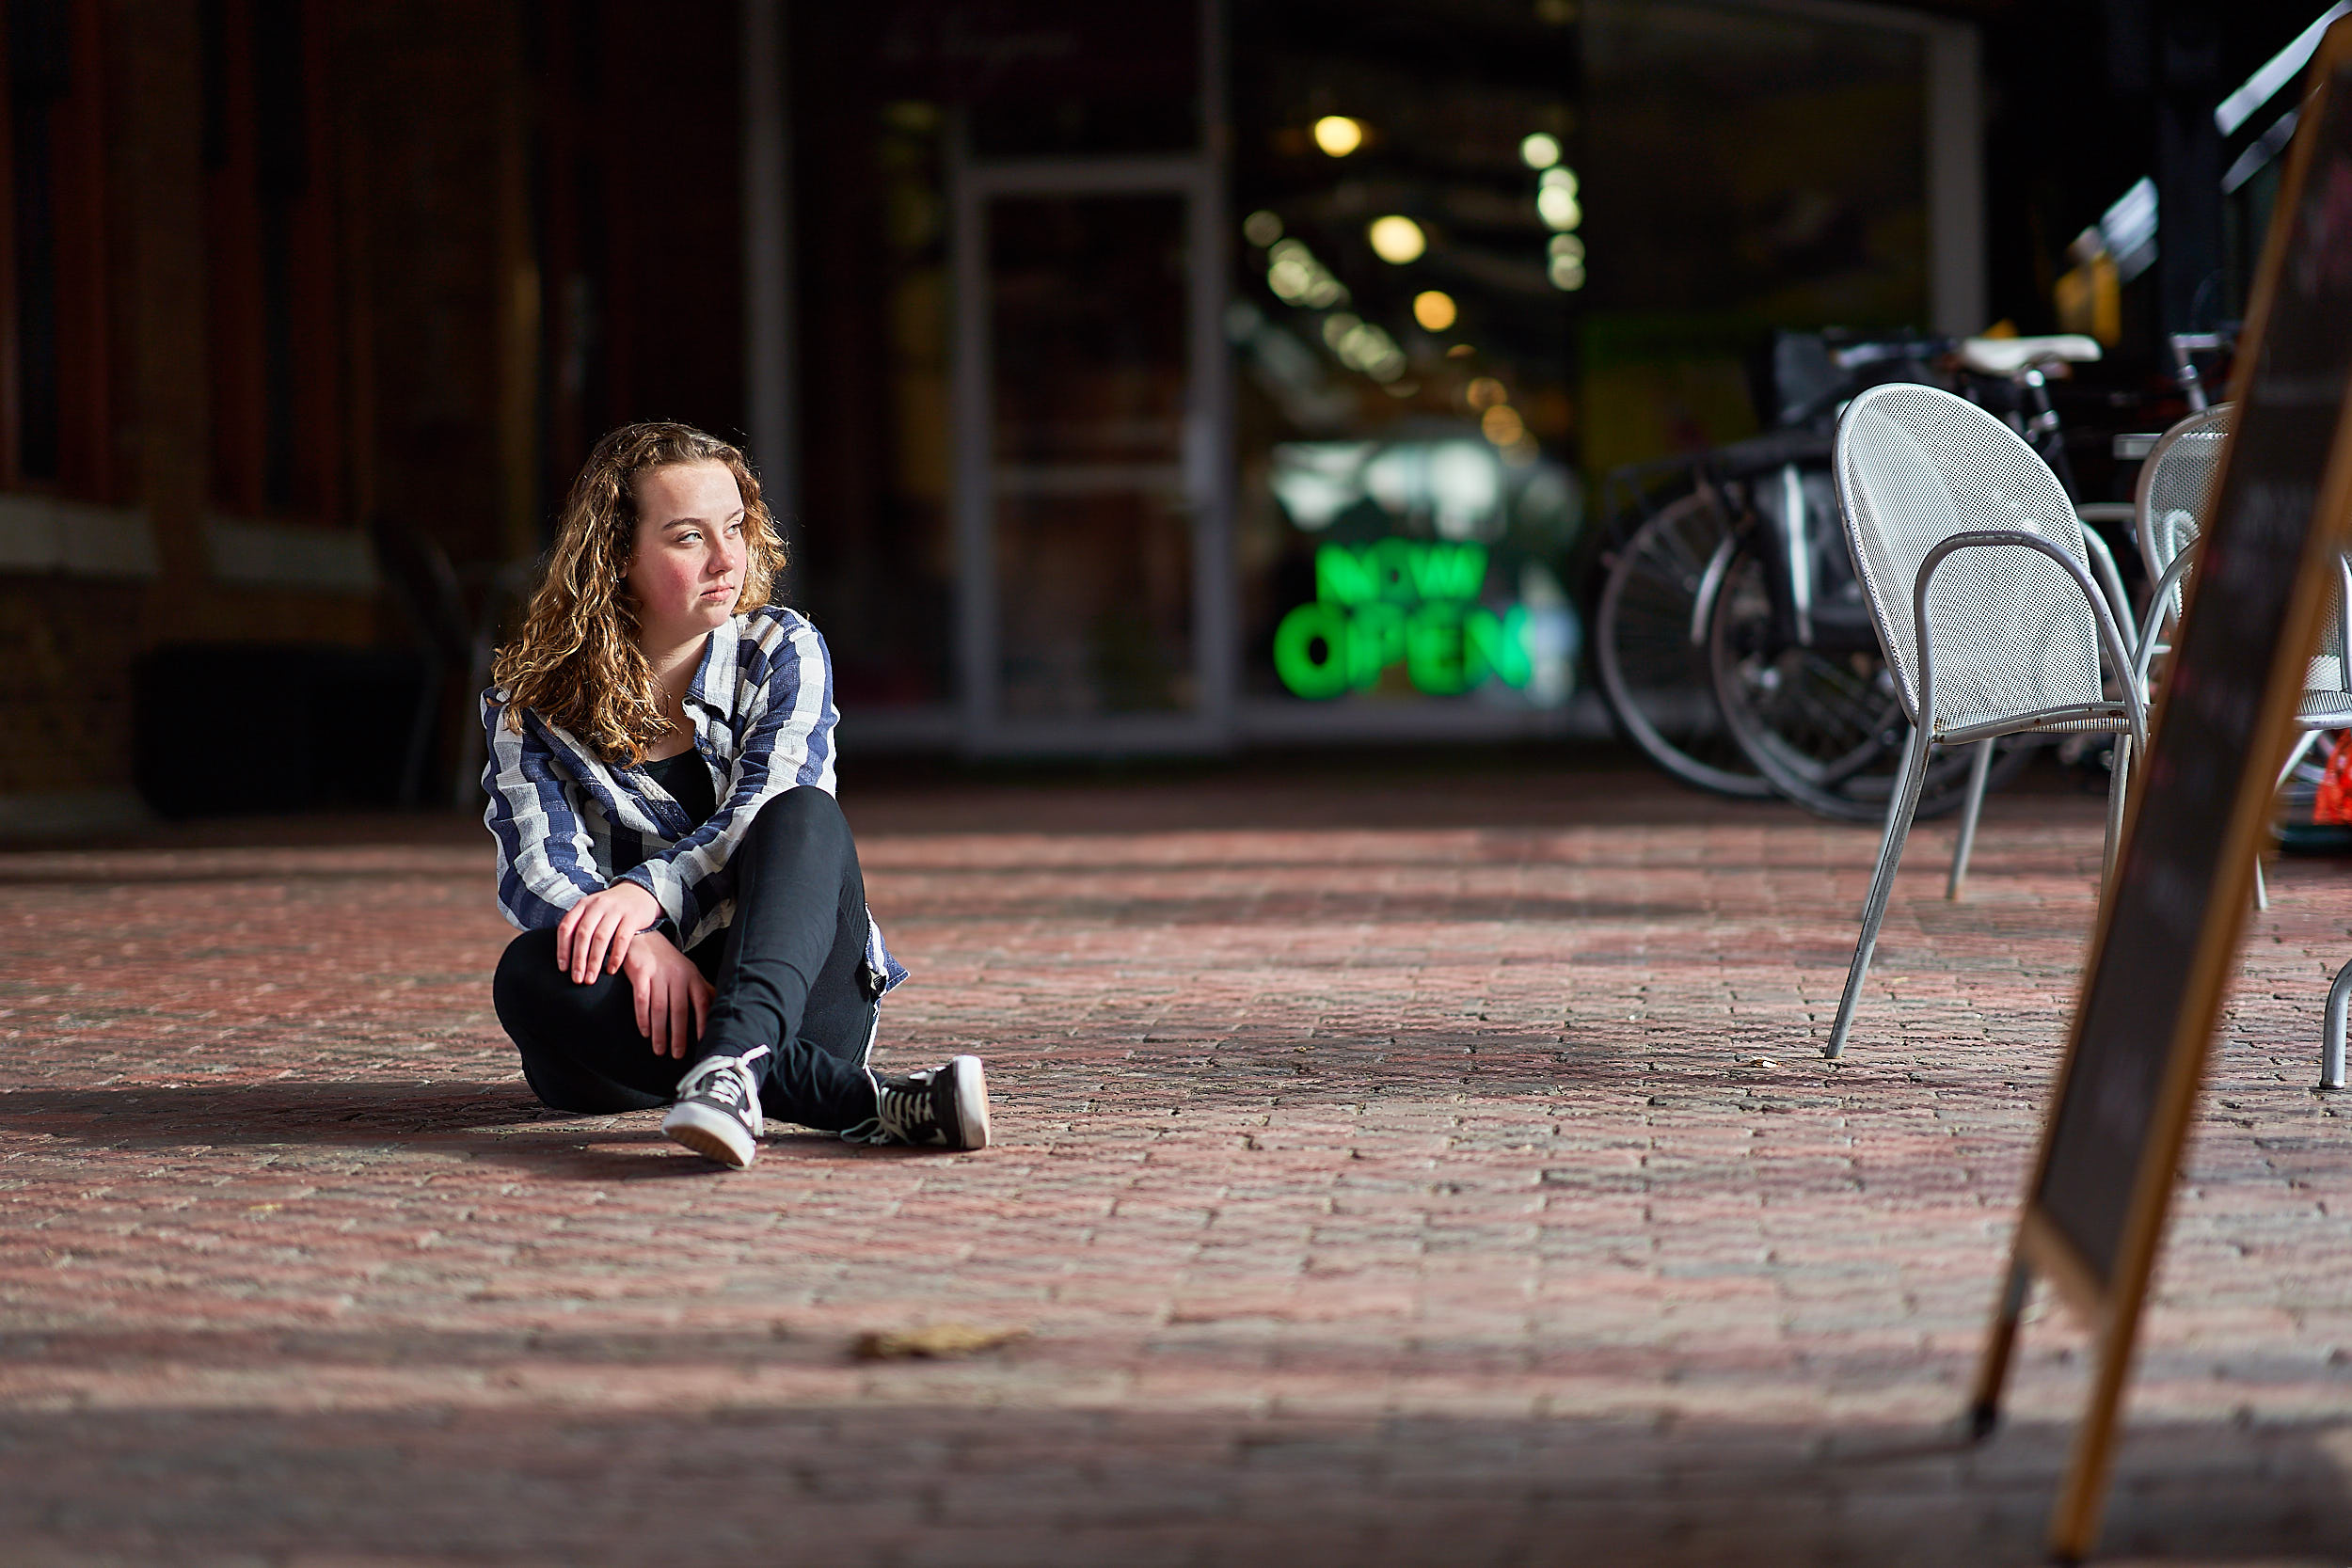 Urban Portrait Sitting Teenage Girl | Photo by BillyBengtson.com